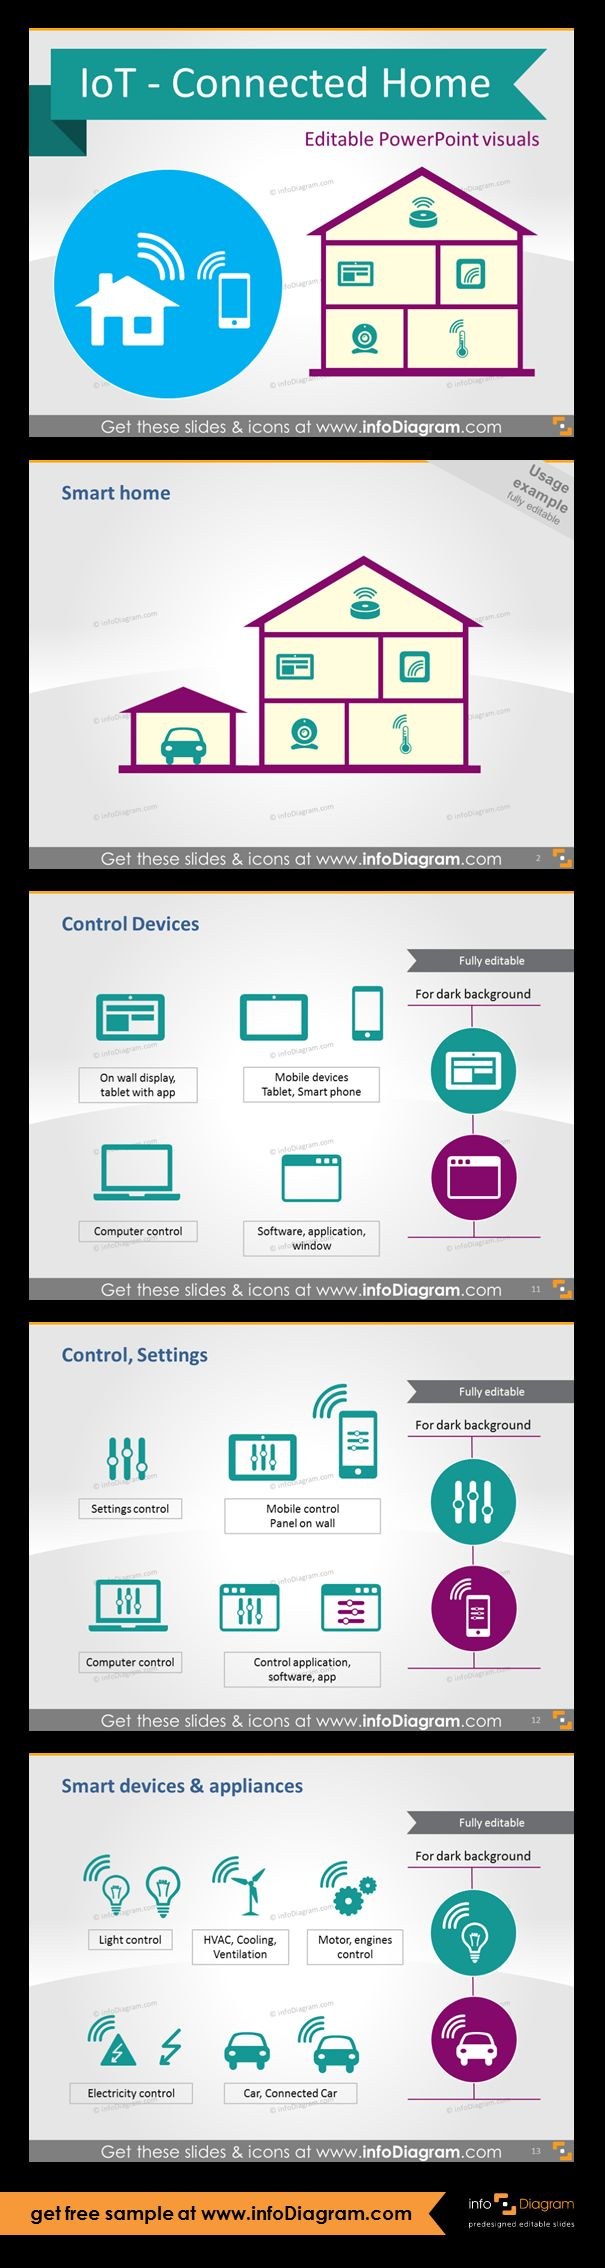 IoT - Connected home graphics. Examples of control devices: on wall display, tablet with app, mobile devices, tablet. Control and settings icons. Smart devices and appliances: light control or motor / engines control. Smart Home outline graphics.